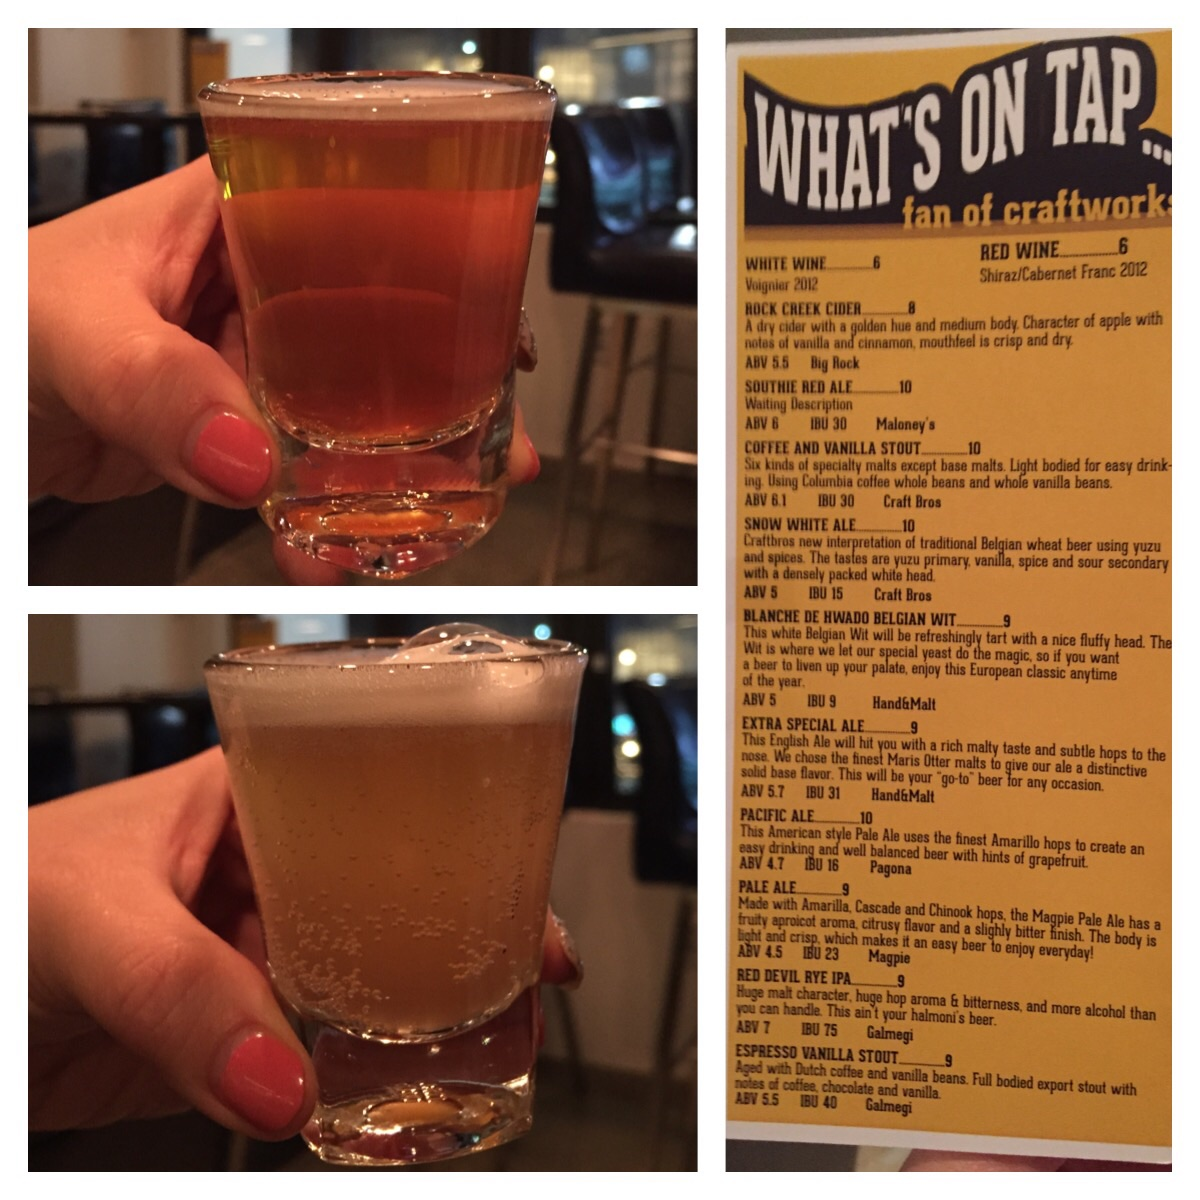 """and the SNOW WHITE ALE (top second to the left). - """"Tastes of """"yuzu primary, vanilla, spice and sour secondary with a densely packed white head.""""     I liked this one the best, so ordered a regular size of it. It tasted sort of citrusy like a Hoegaarden."""